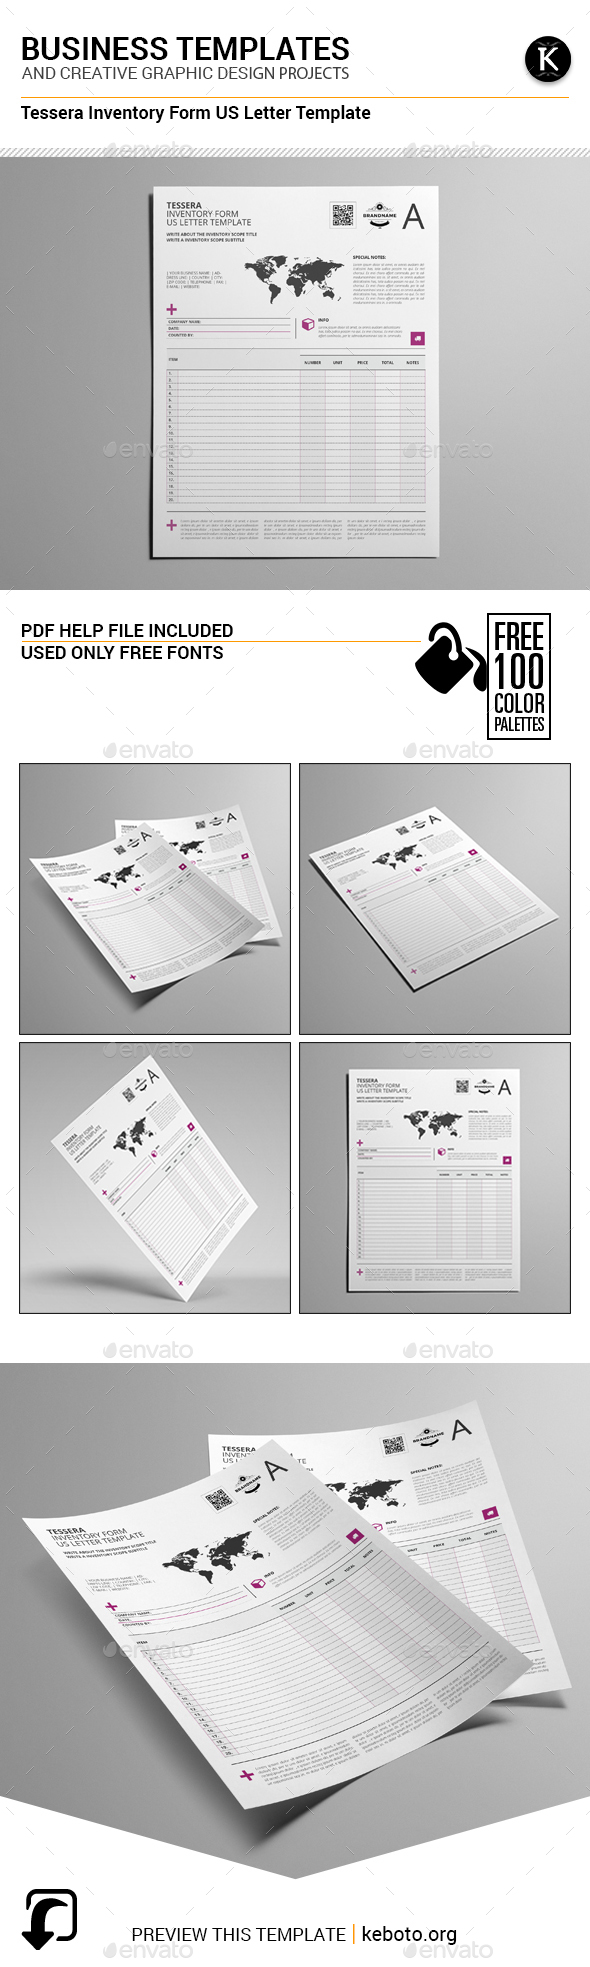 Tessera Inventory Form US Letter Template - Miscellaneous Print Templates